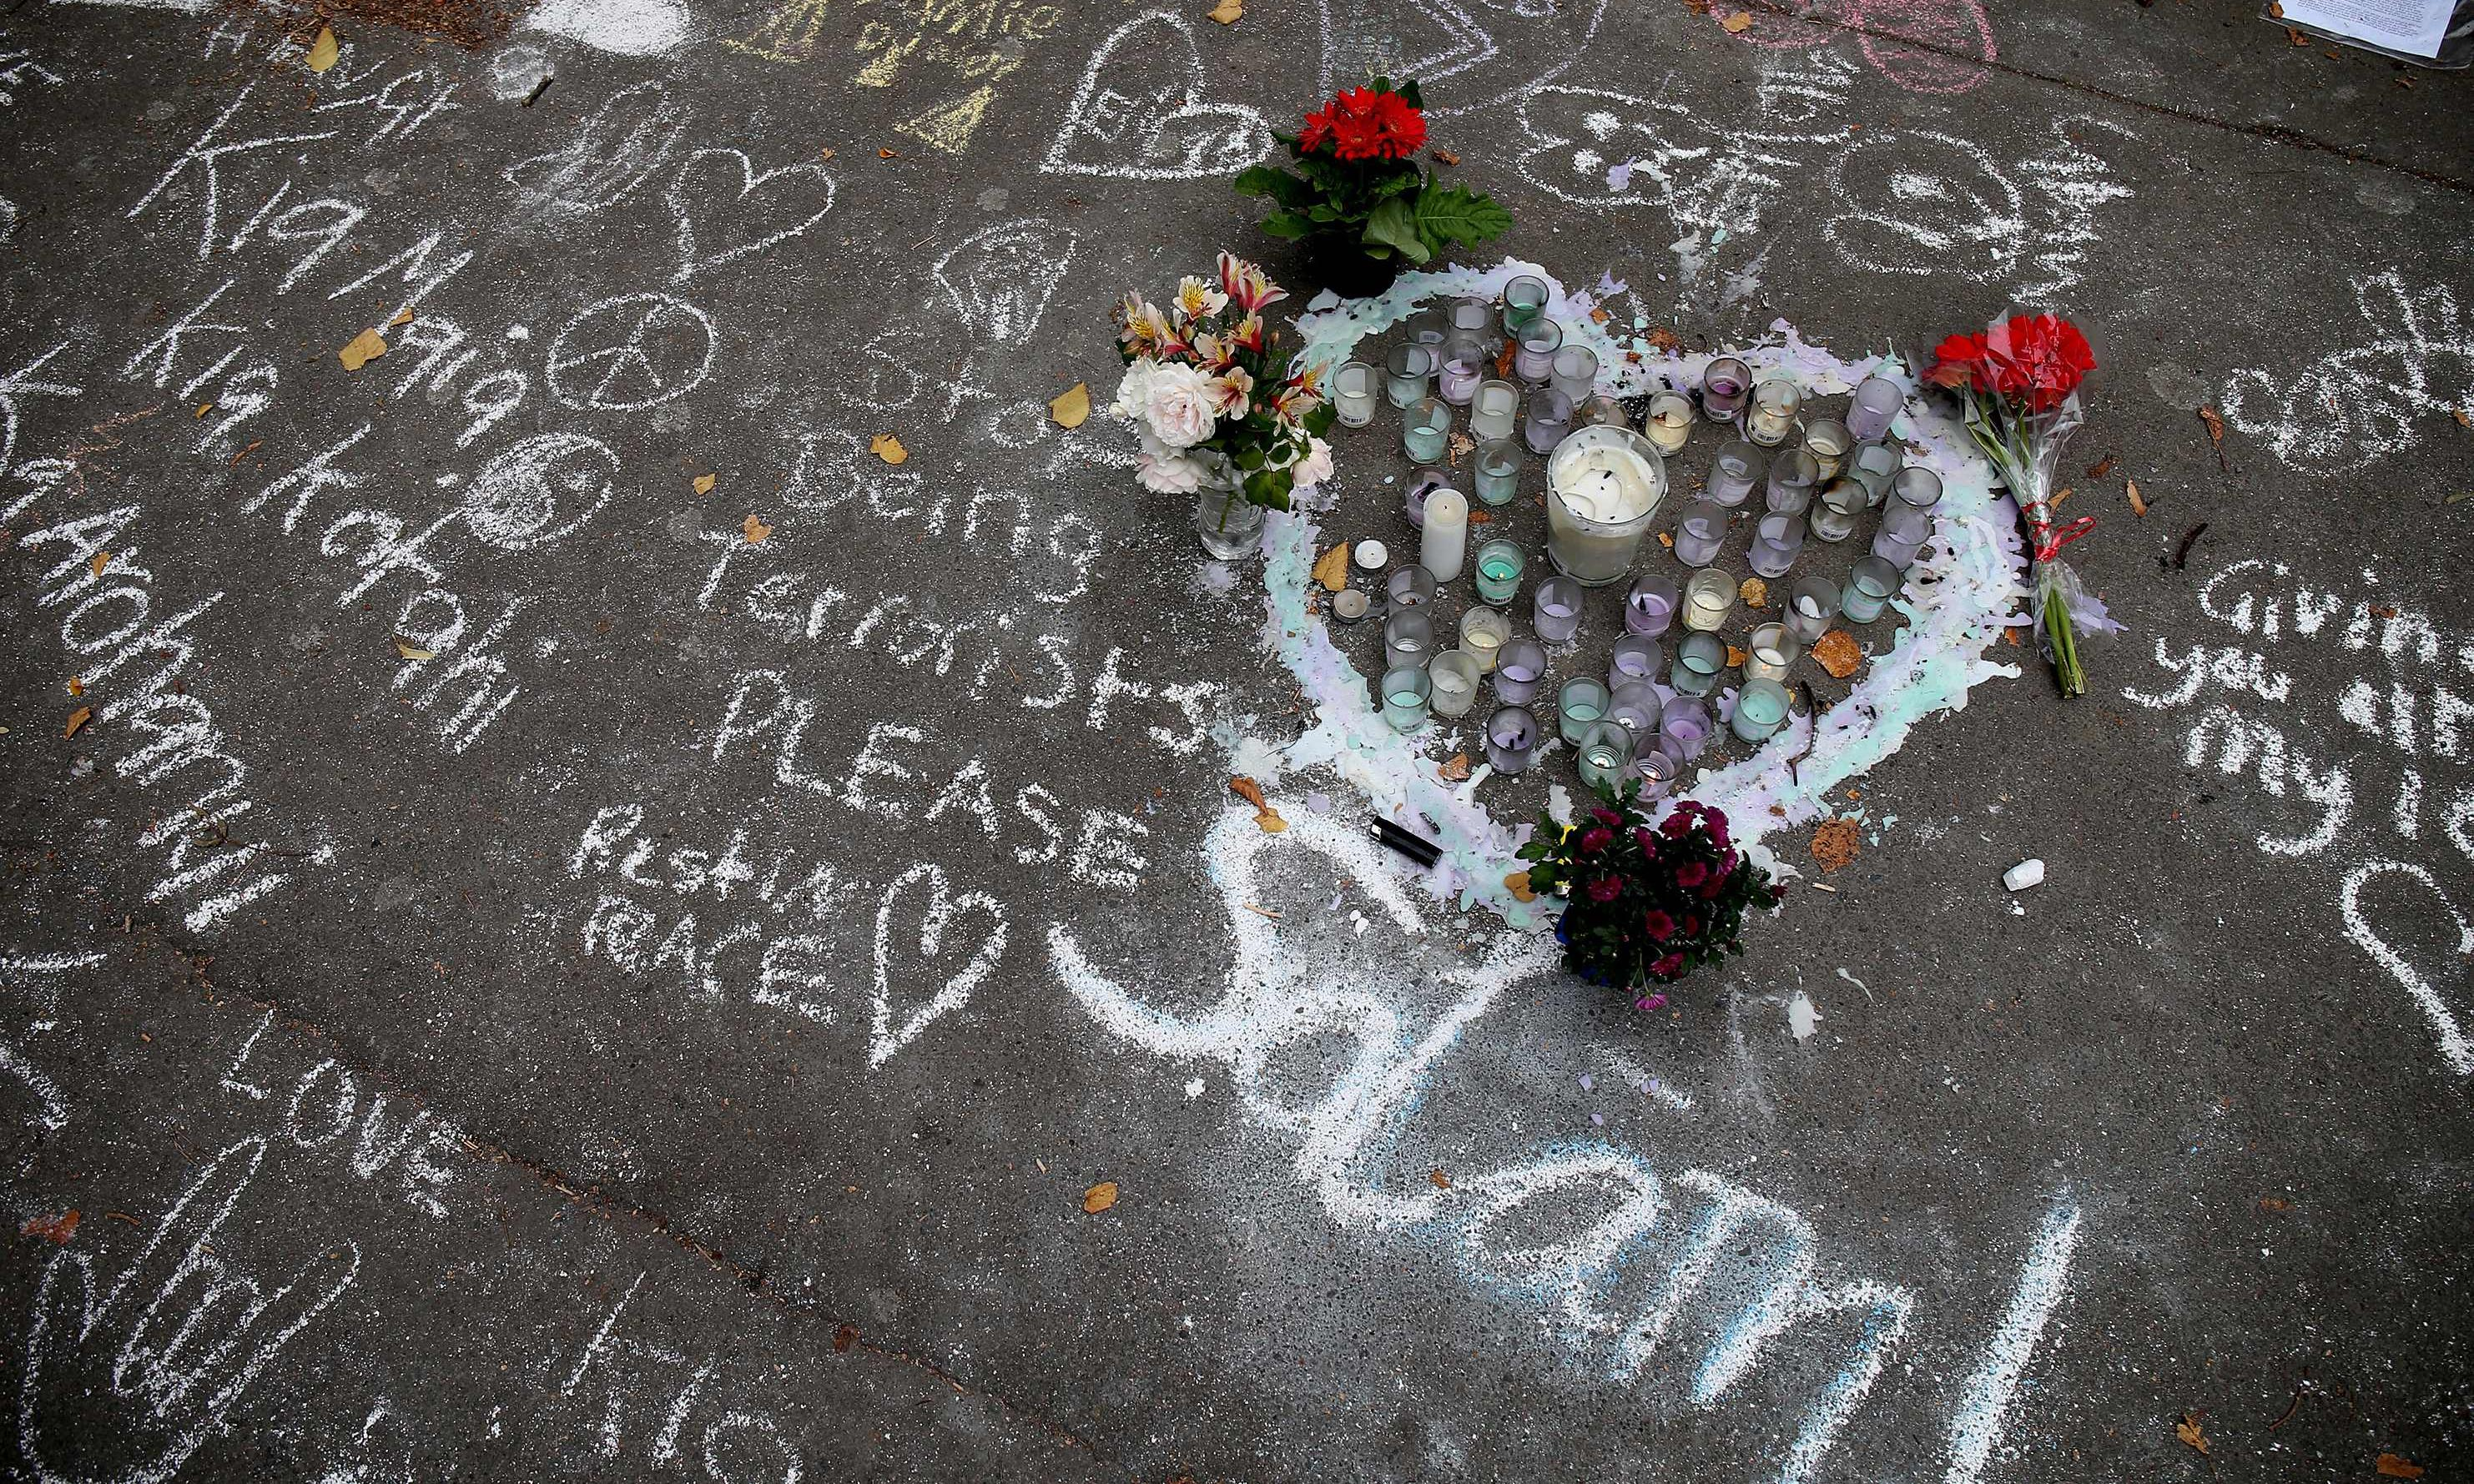 Grieving, exhausted, Christchurch tentatively returns to work after massacre